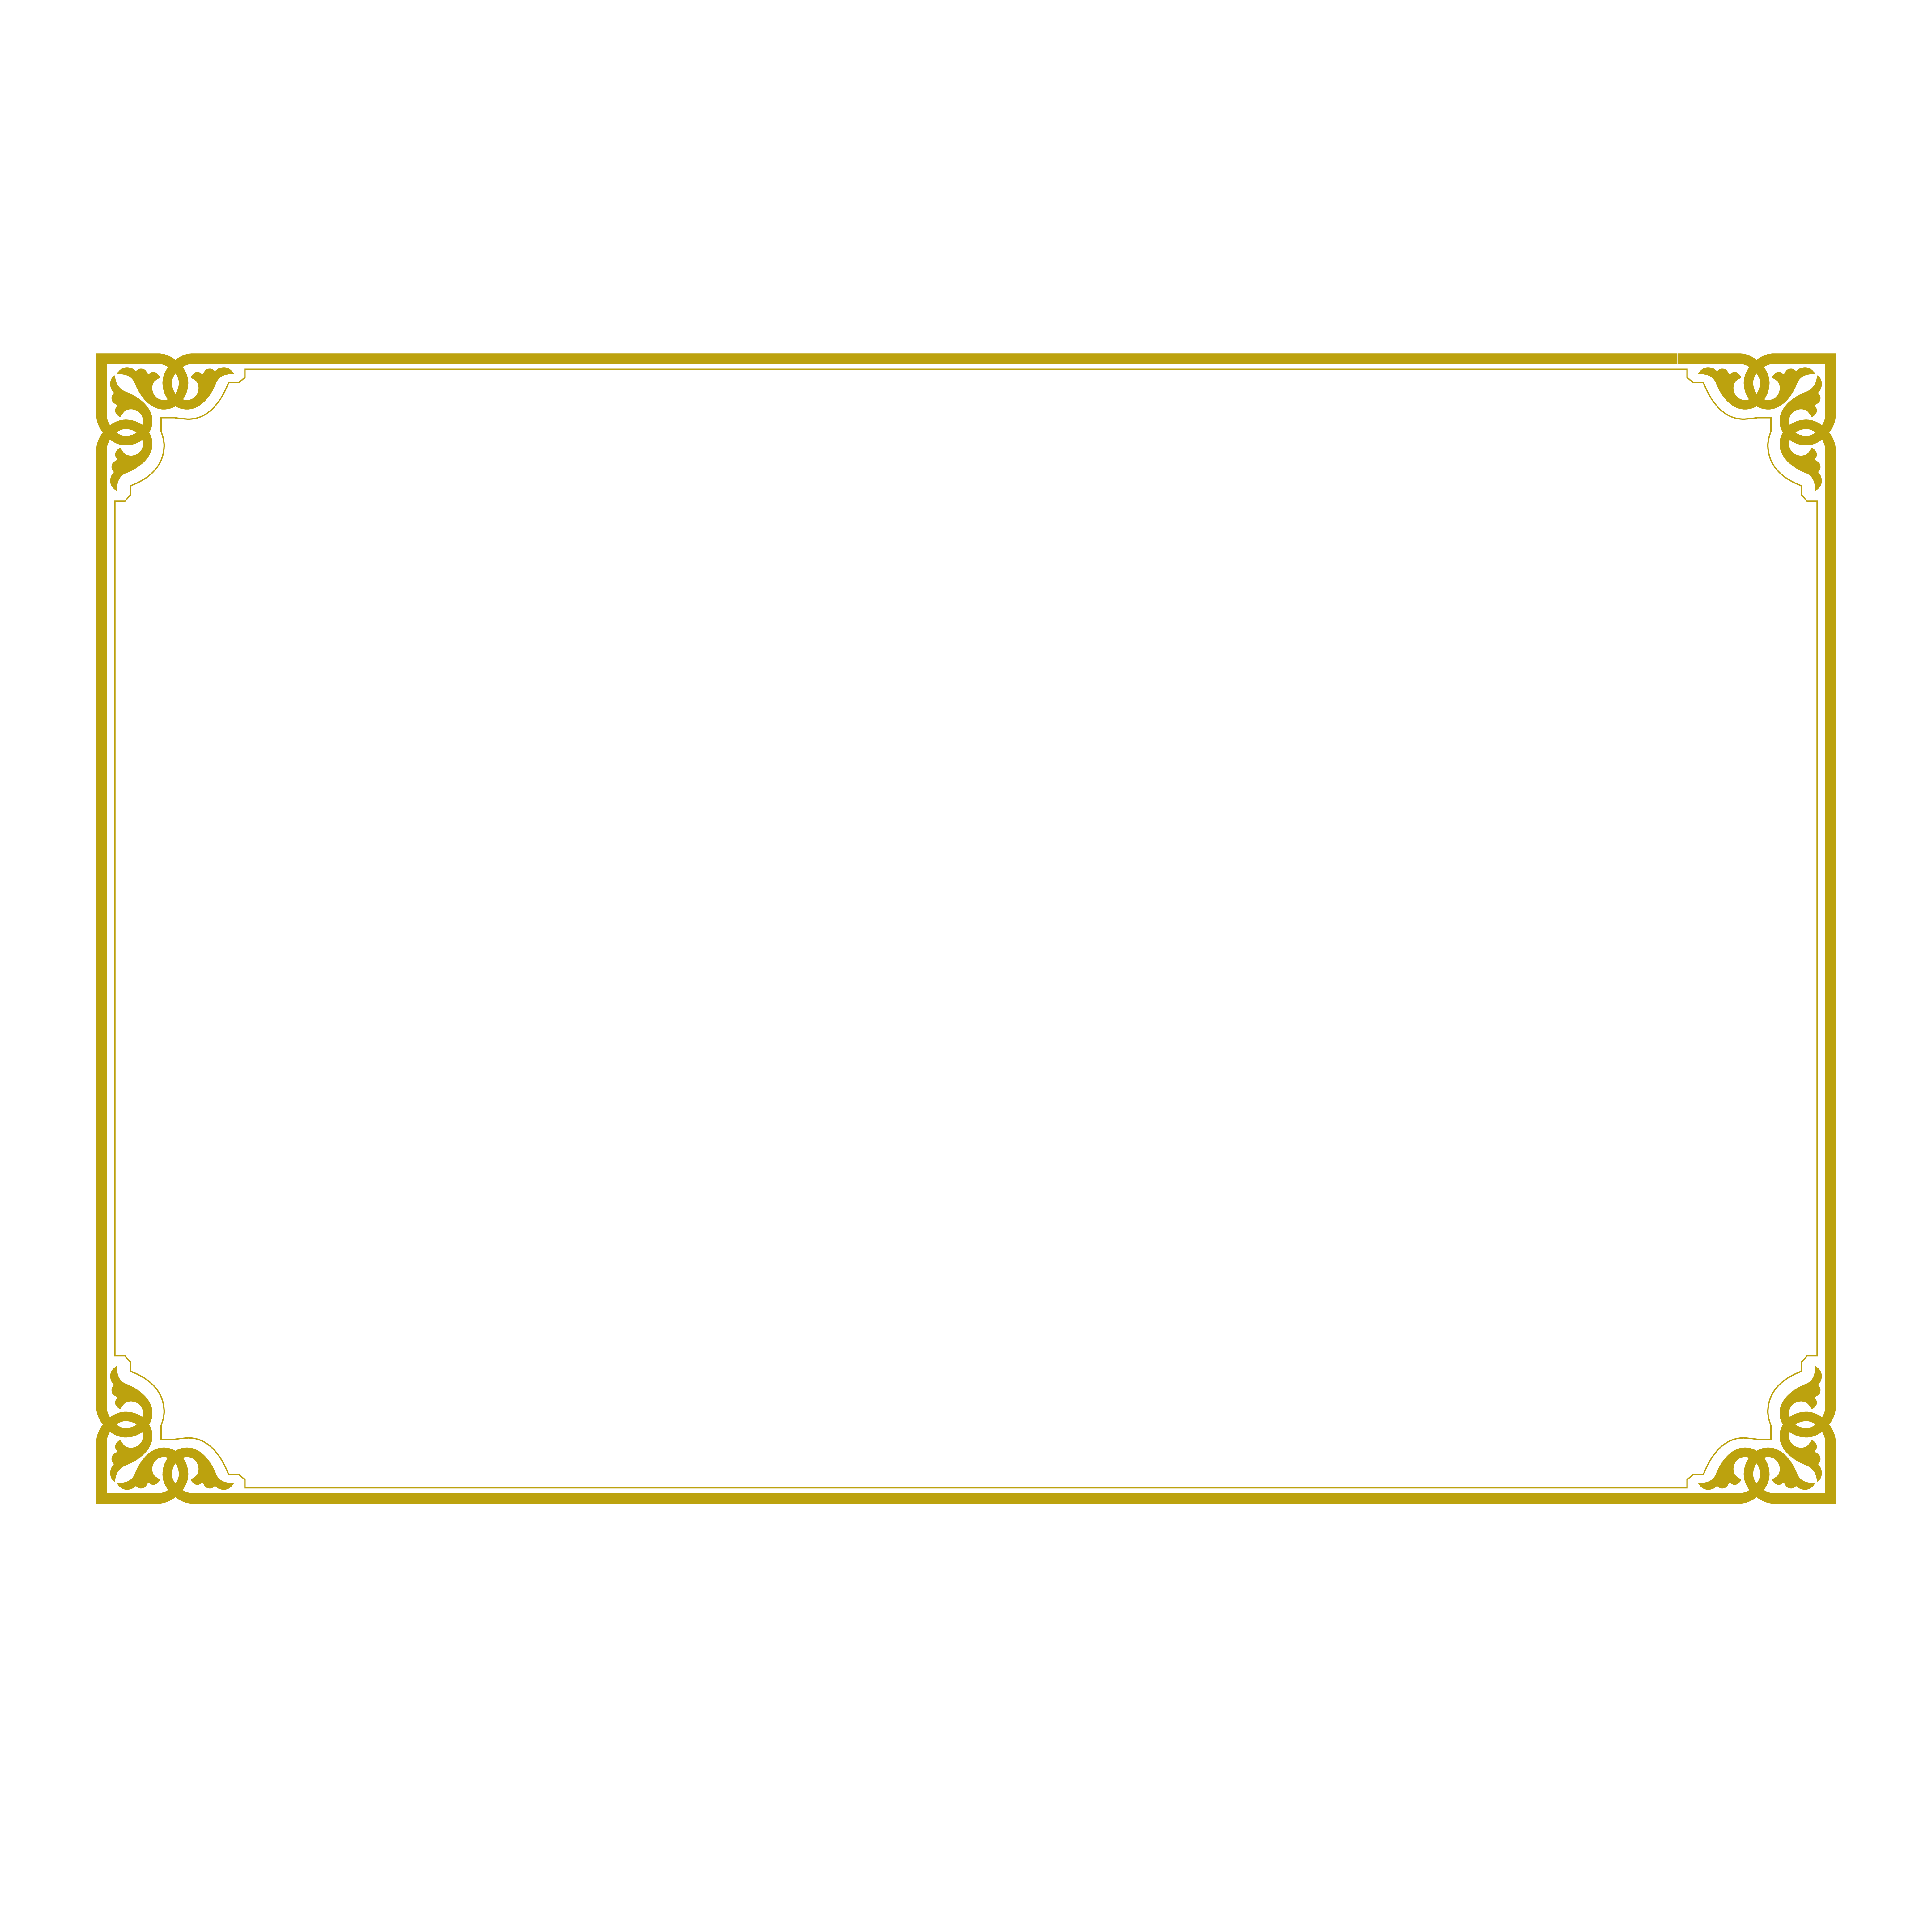 Gold certificate border png. Download angle icon transprent